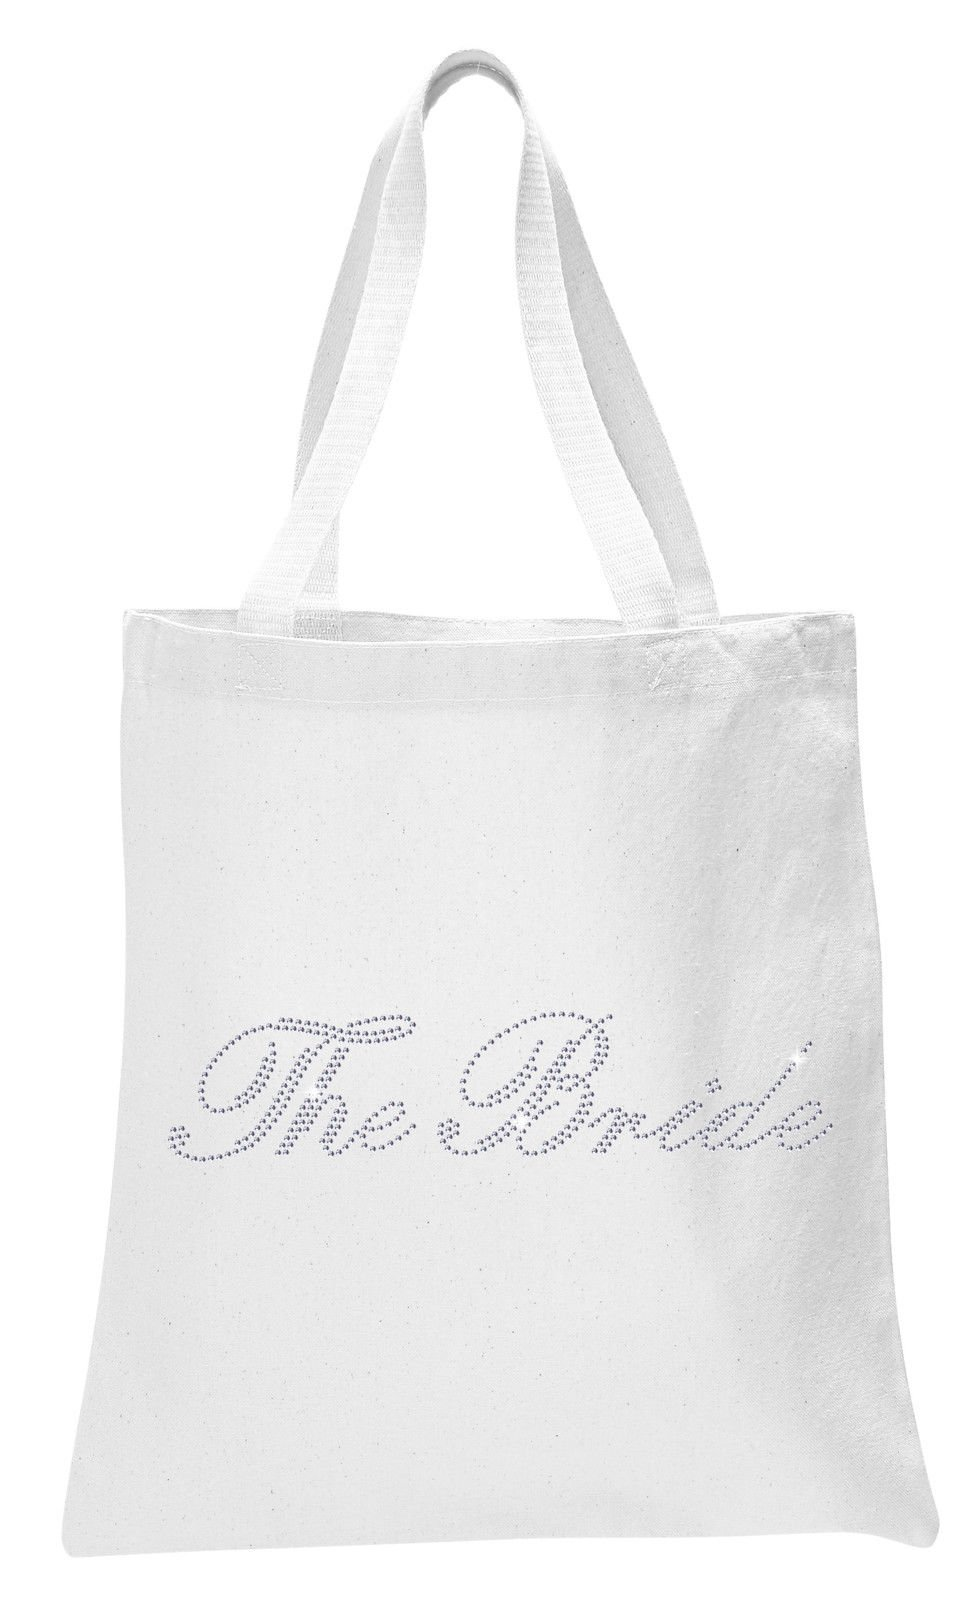 White The Bride Luxury Crystal Bride Tote bag wedding party gift bag Cotton